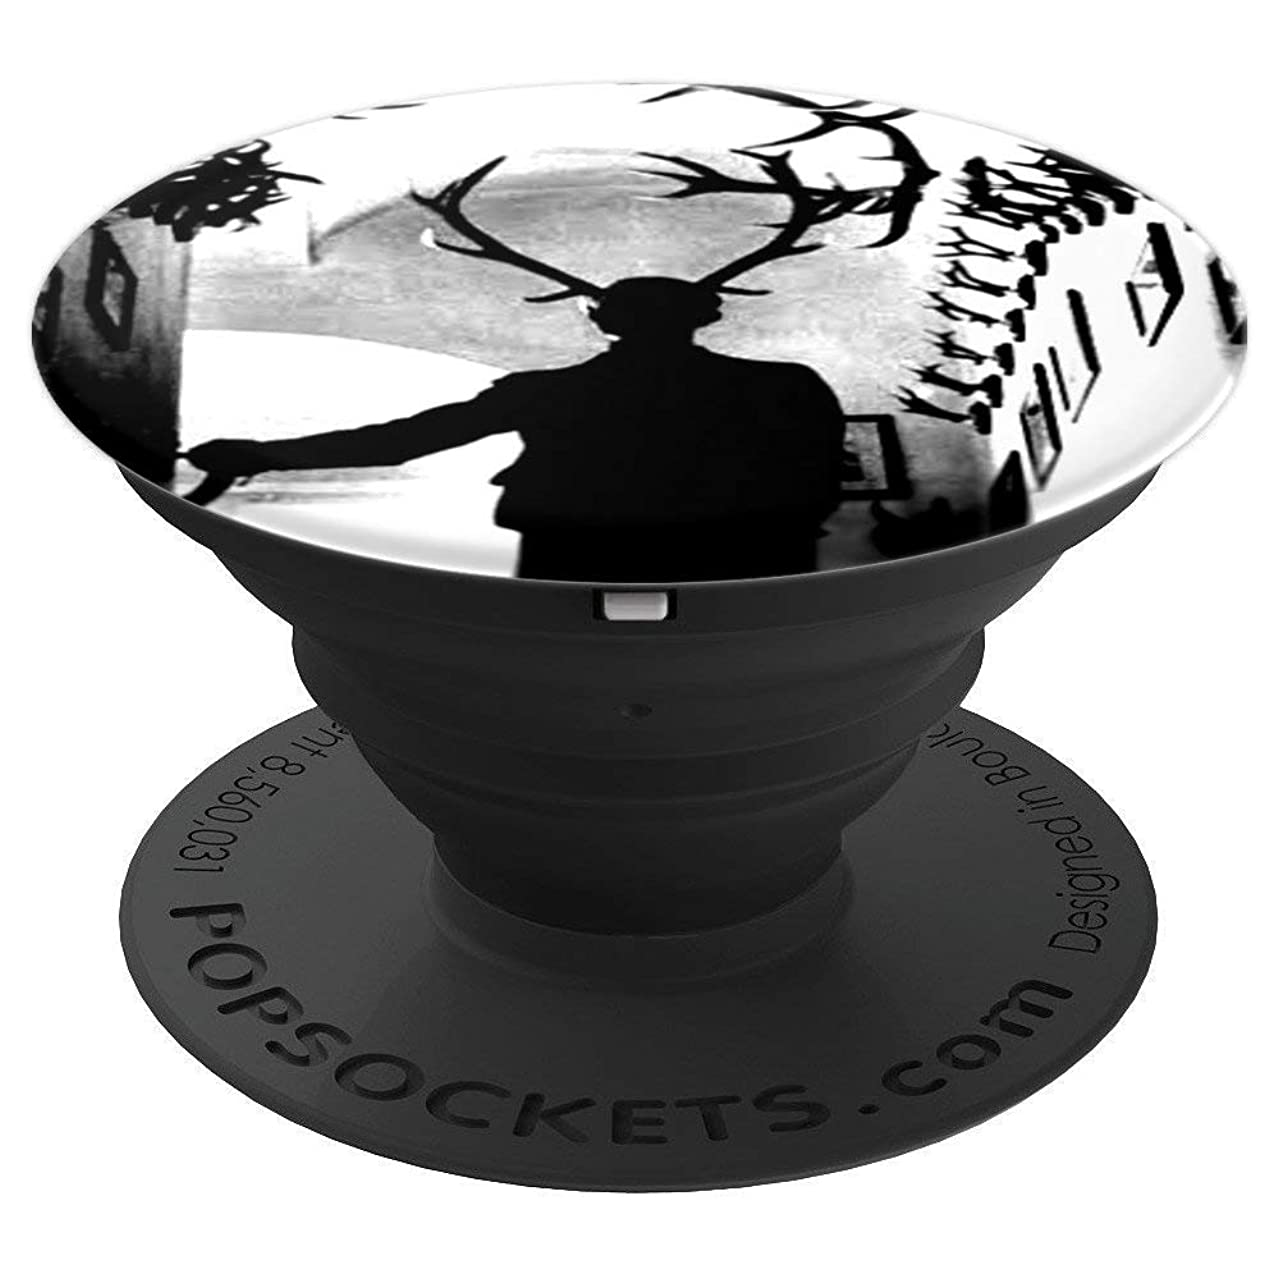 Wendigo Man - Hannibal Homage - PopSockets Grip and Stand for Phones and Tablets